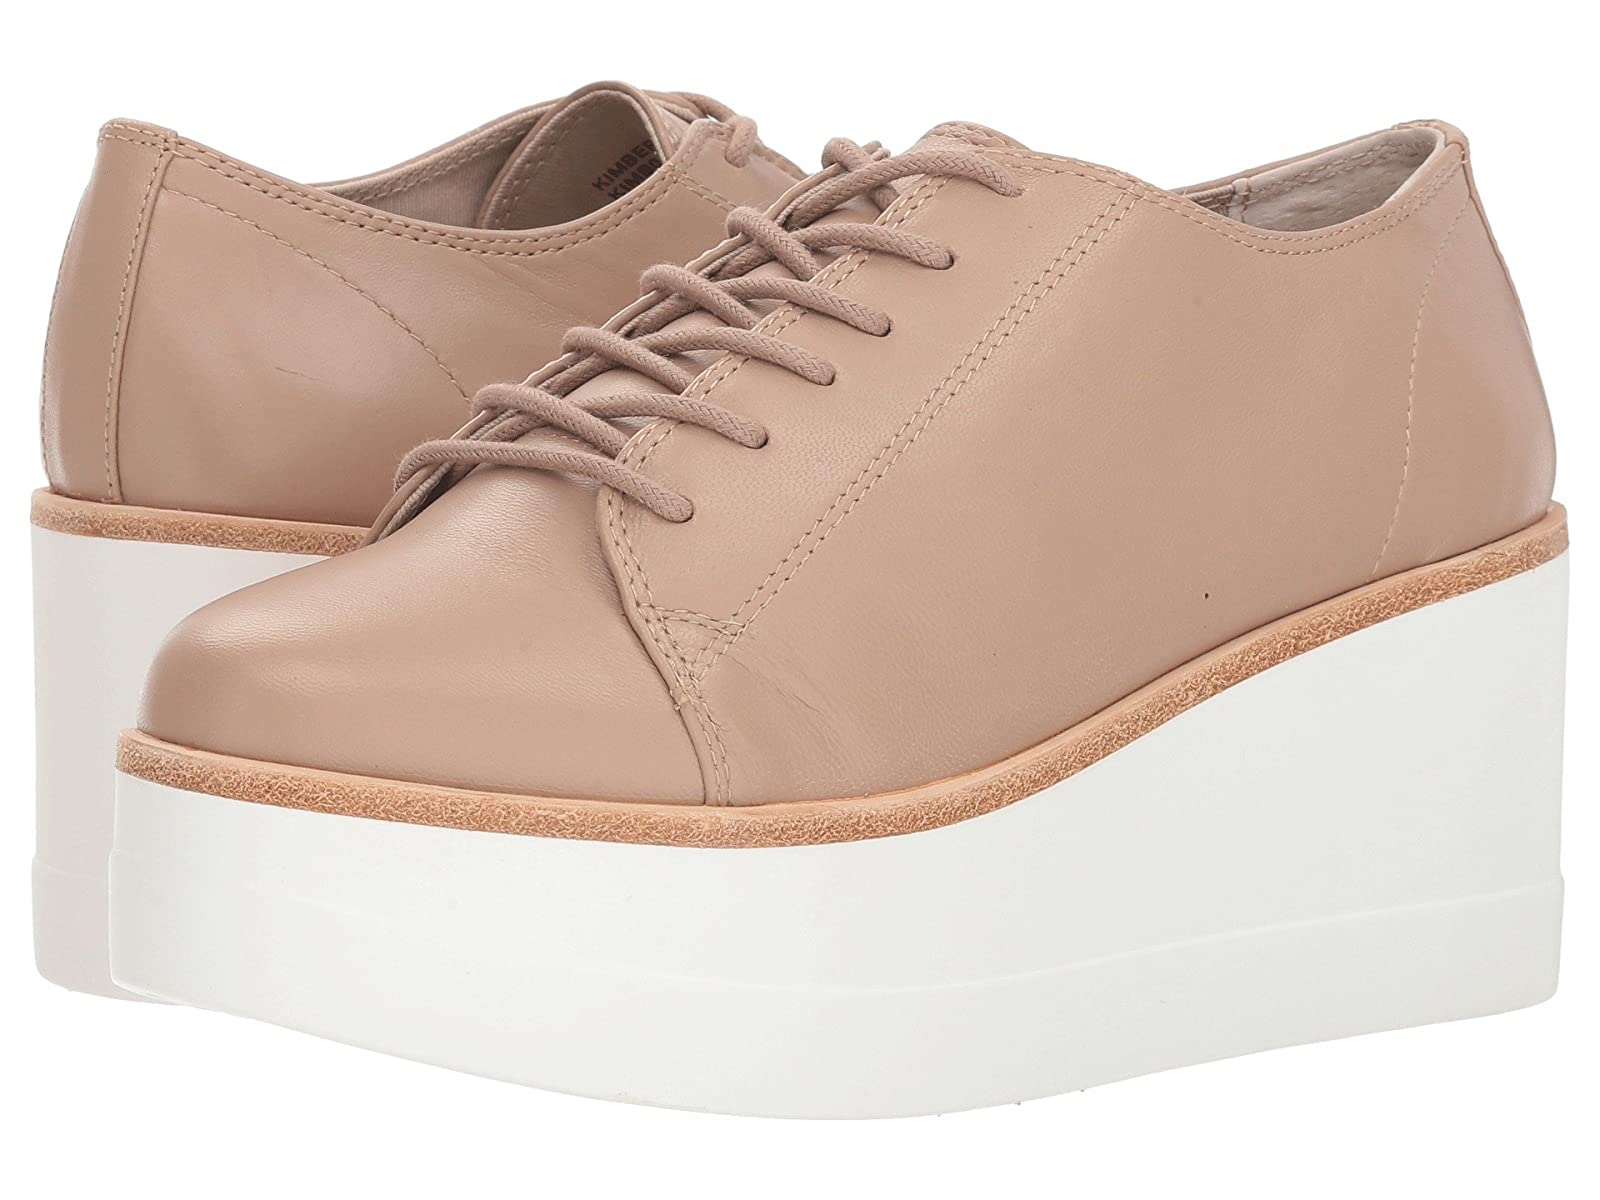 Steve Madden KimberAtmospheric grades have affordable shoes